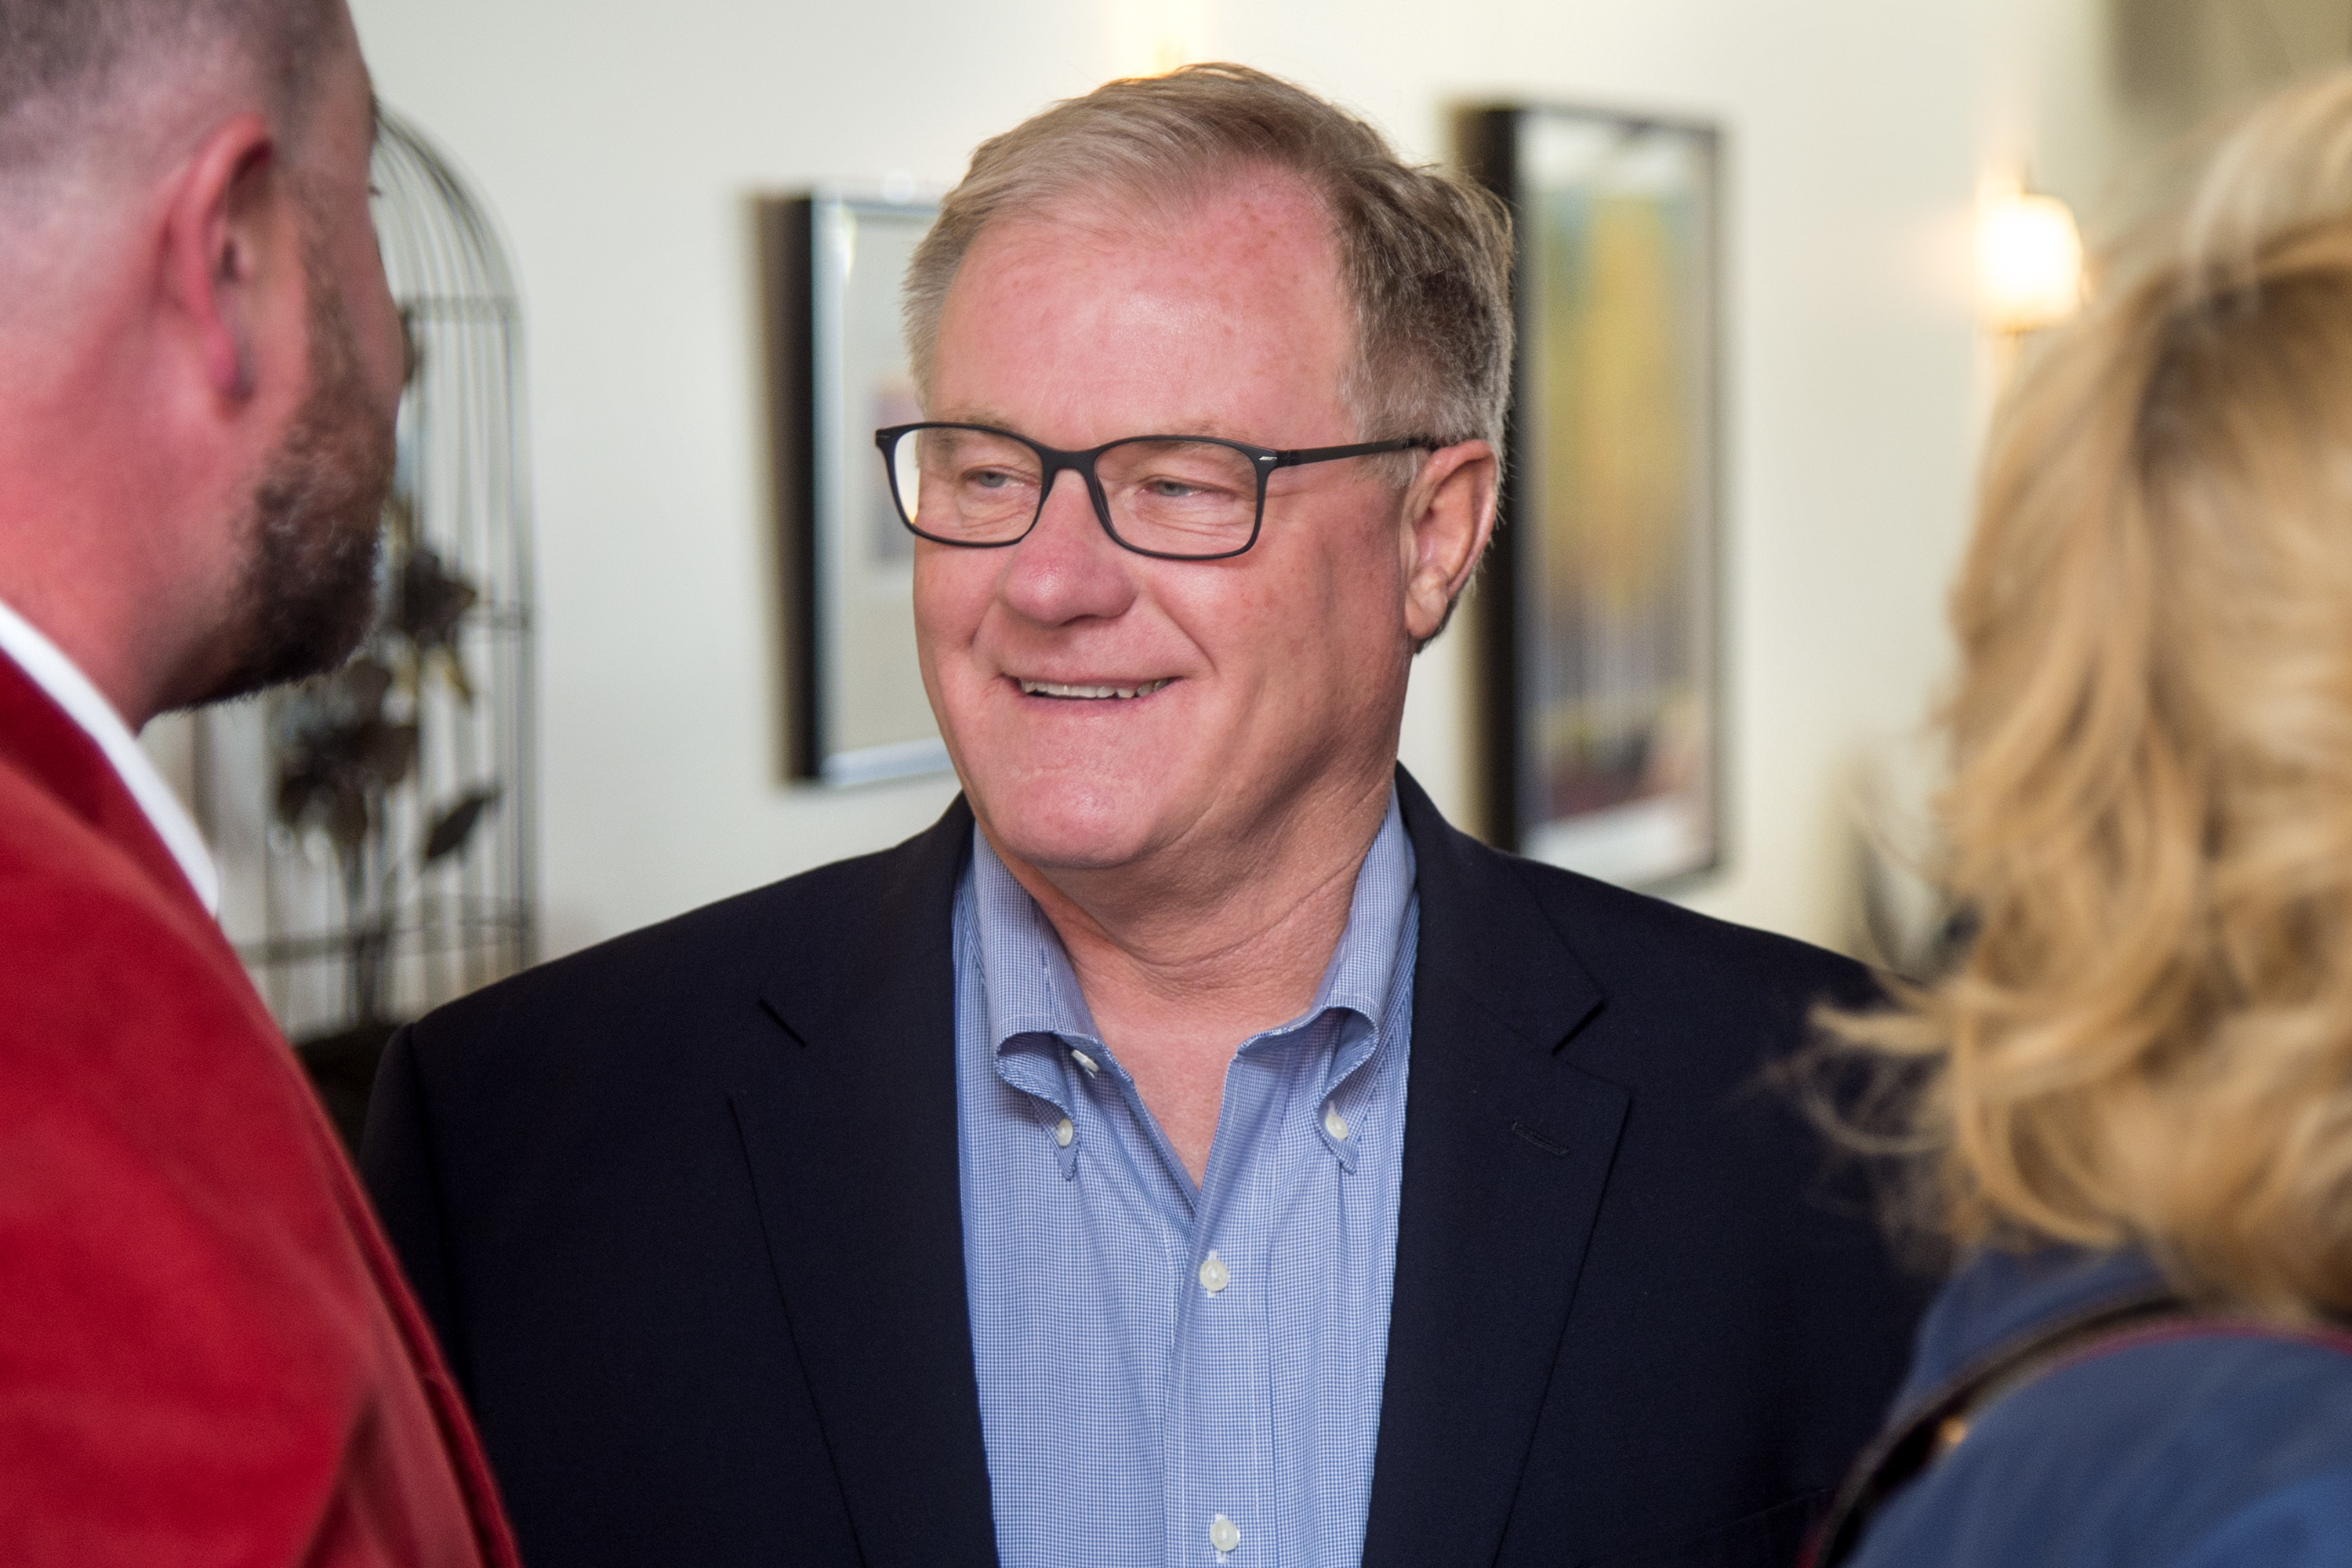 Republican nominee Scott Wagner, pictured in April, is pitching himself to voters as a self-made businessman.